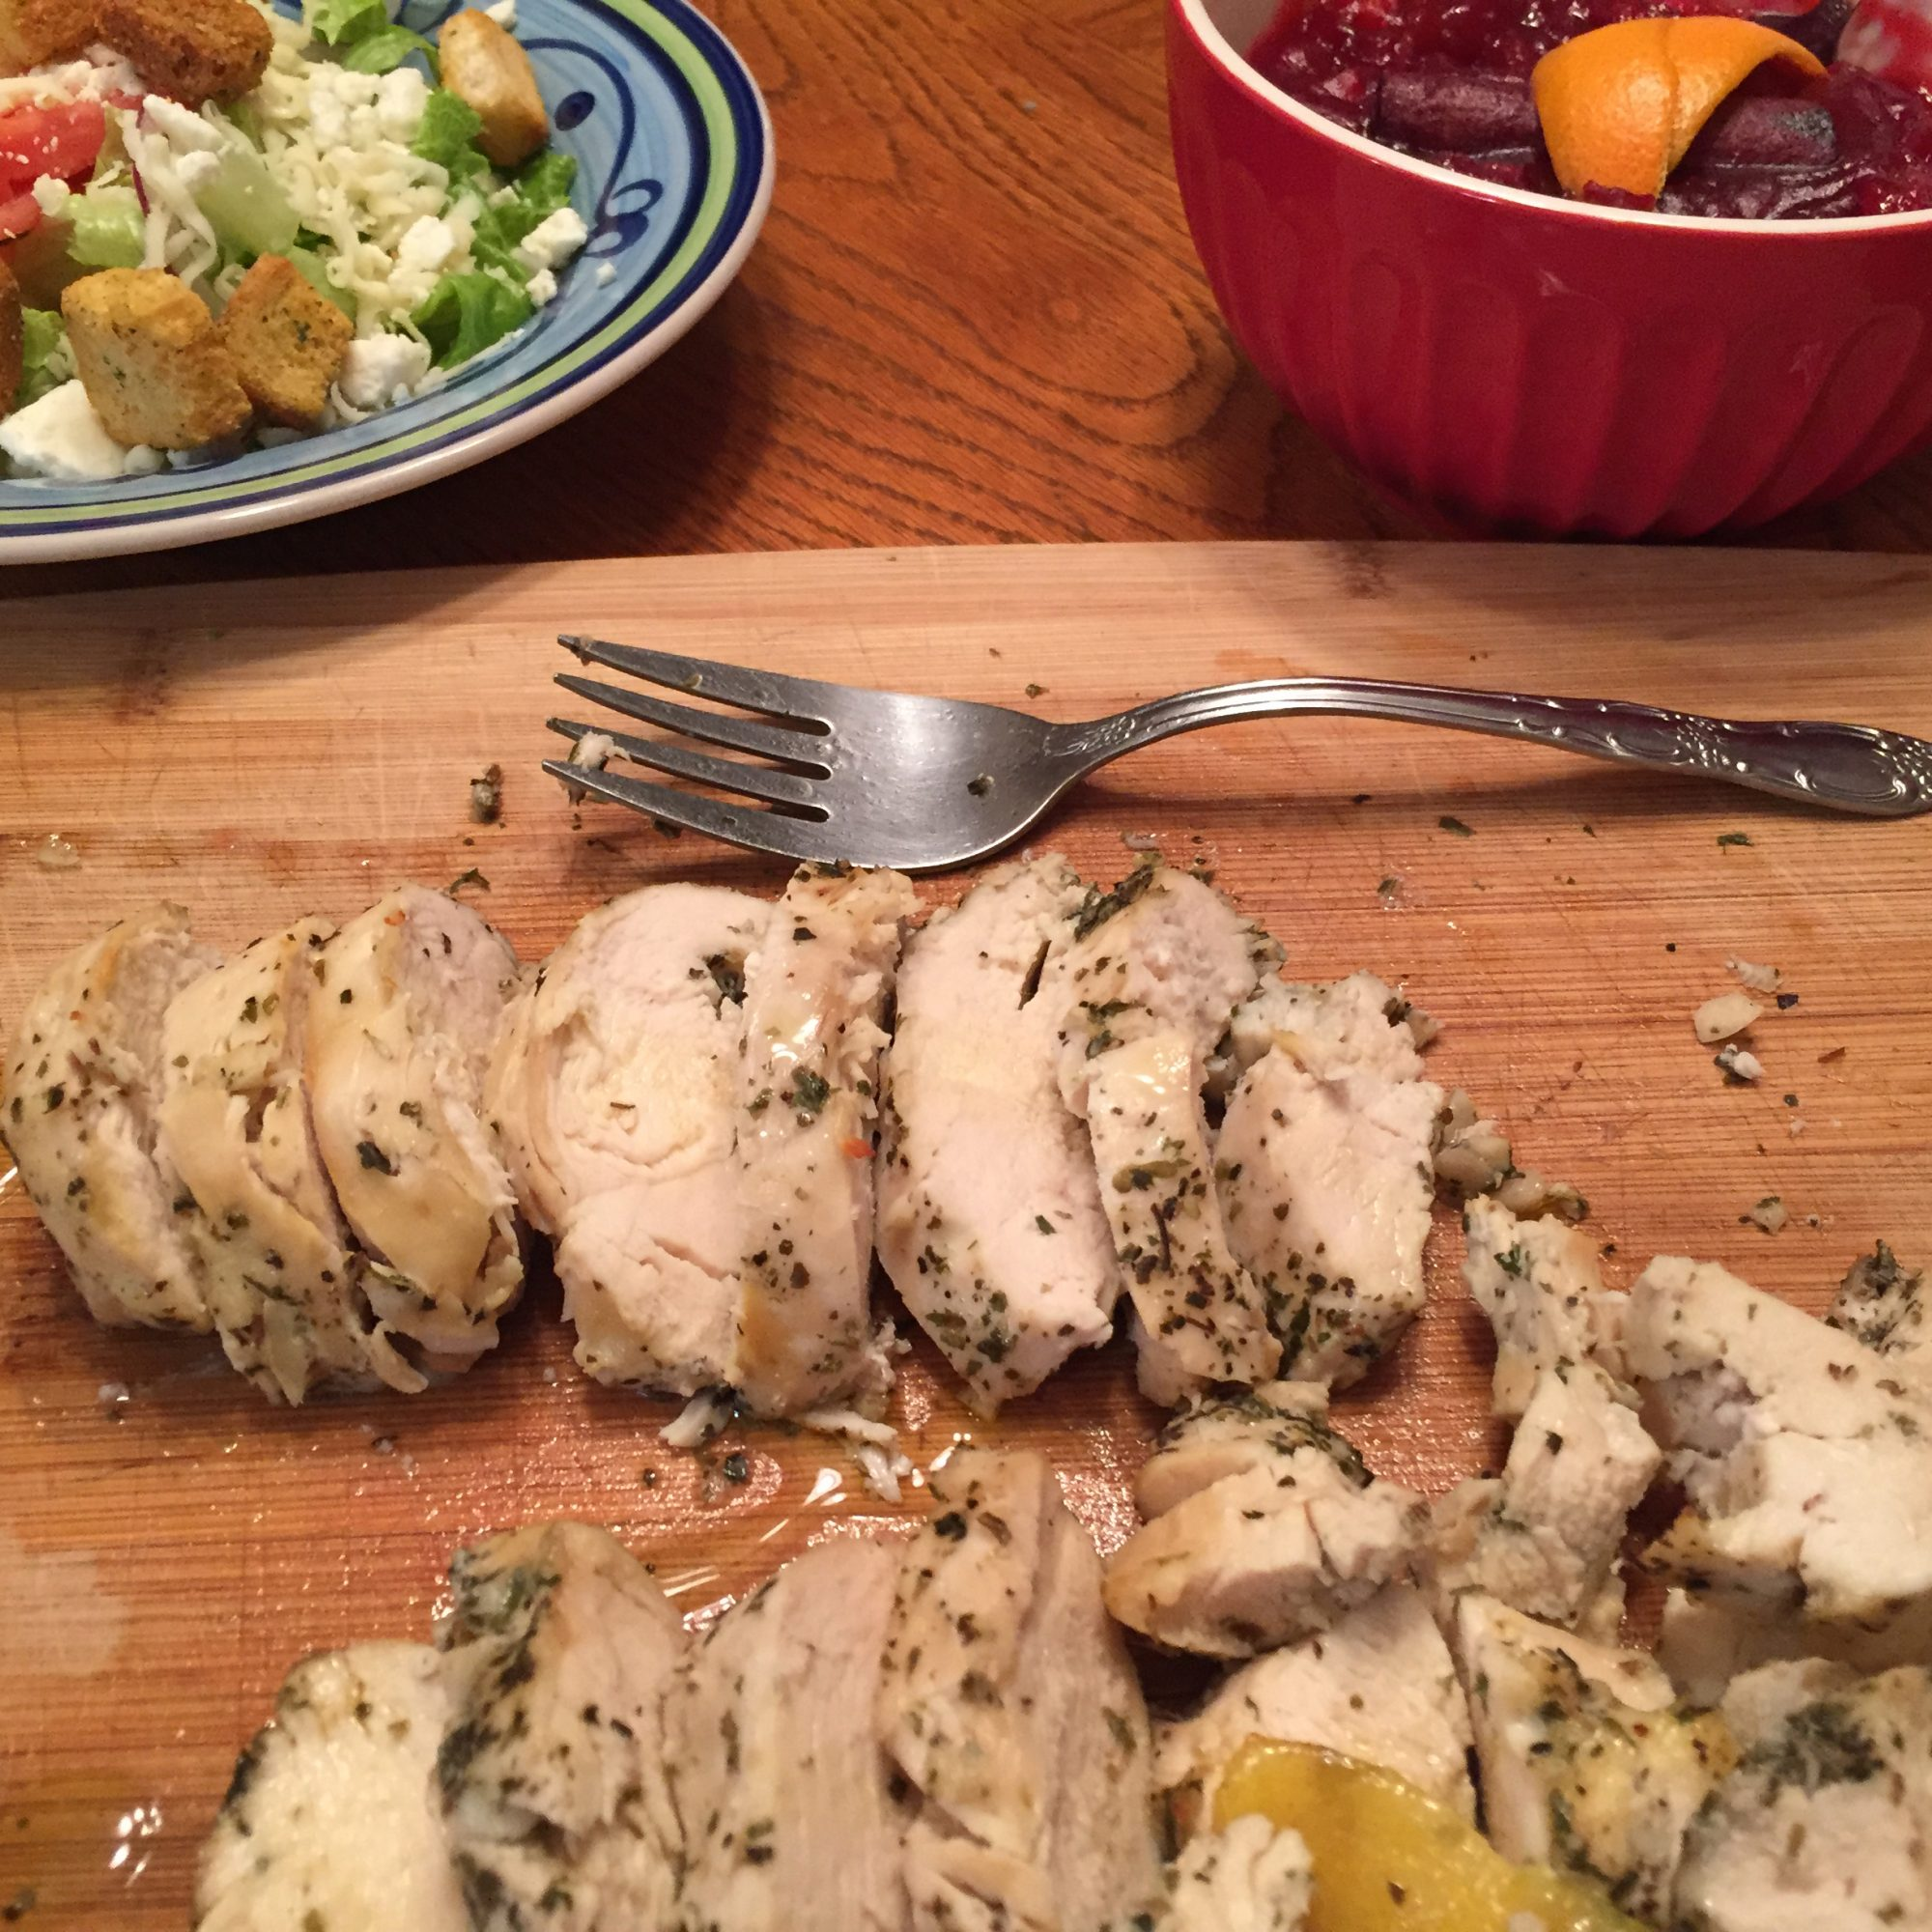 Sous Vide Chicken Breast on a wooden cutting board